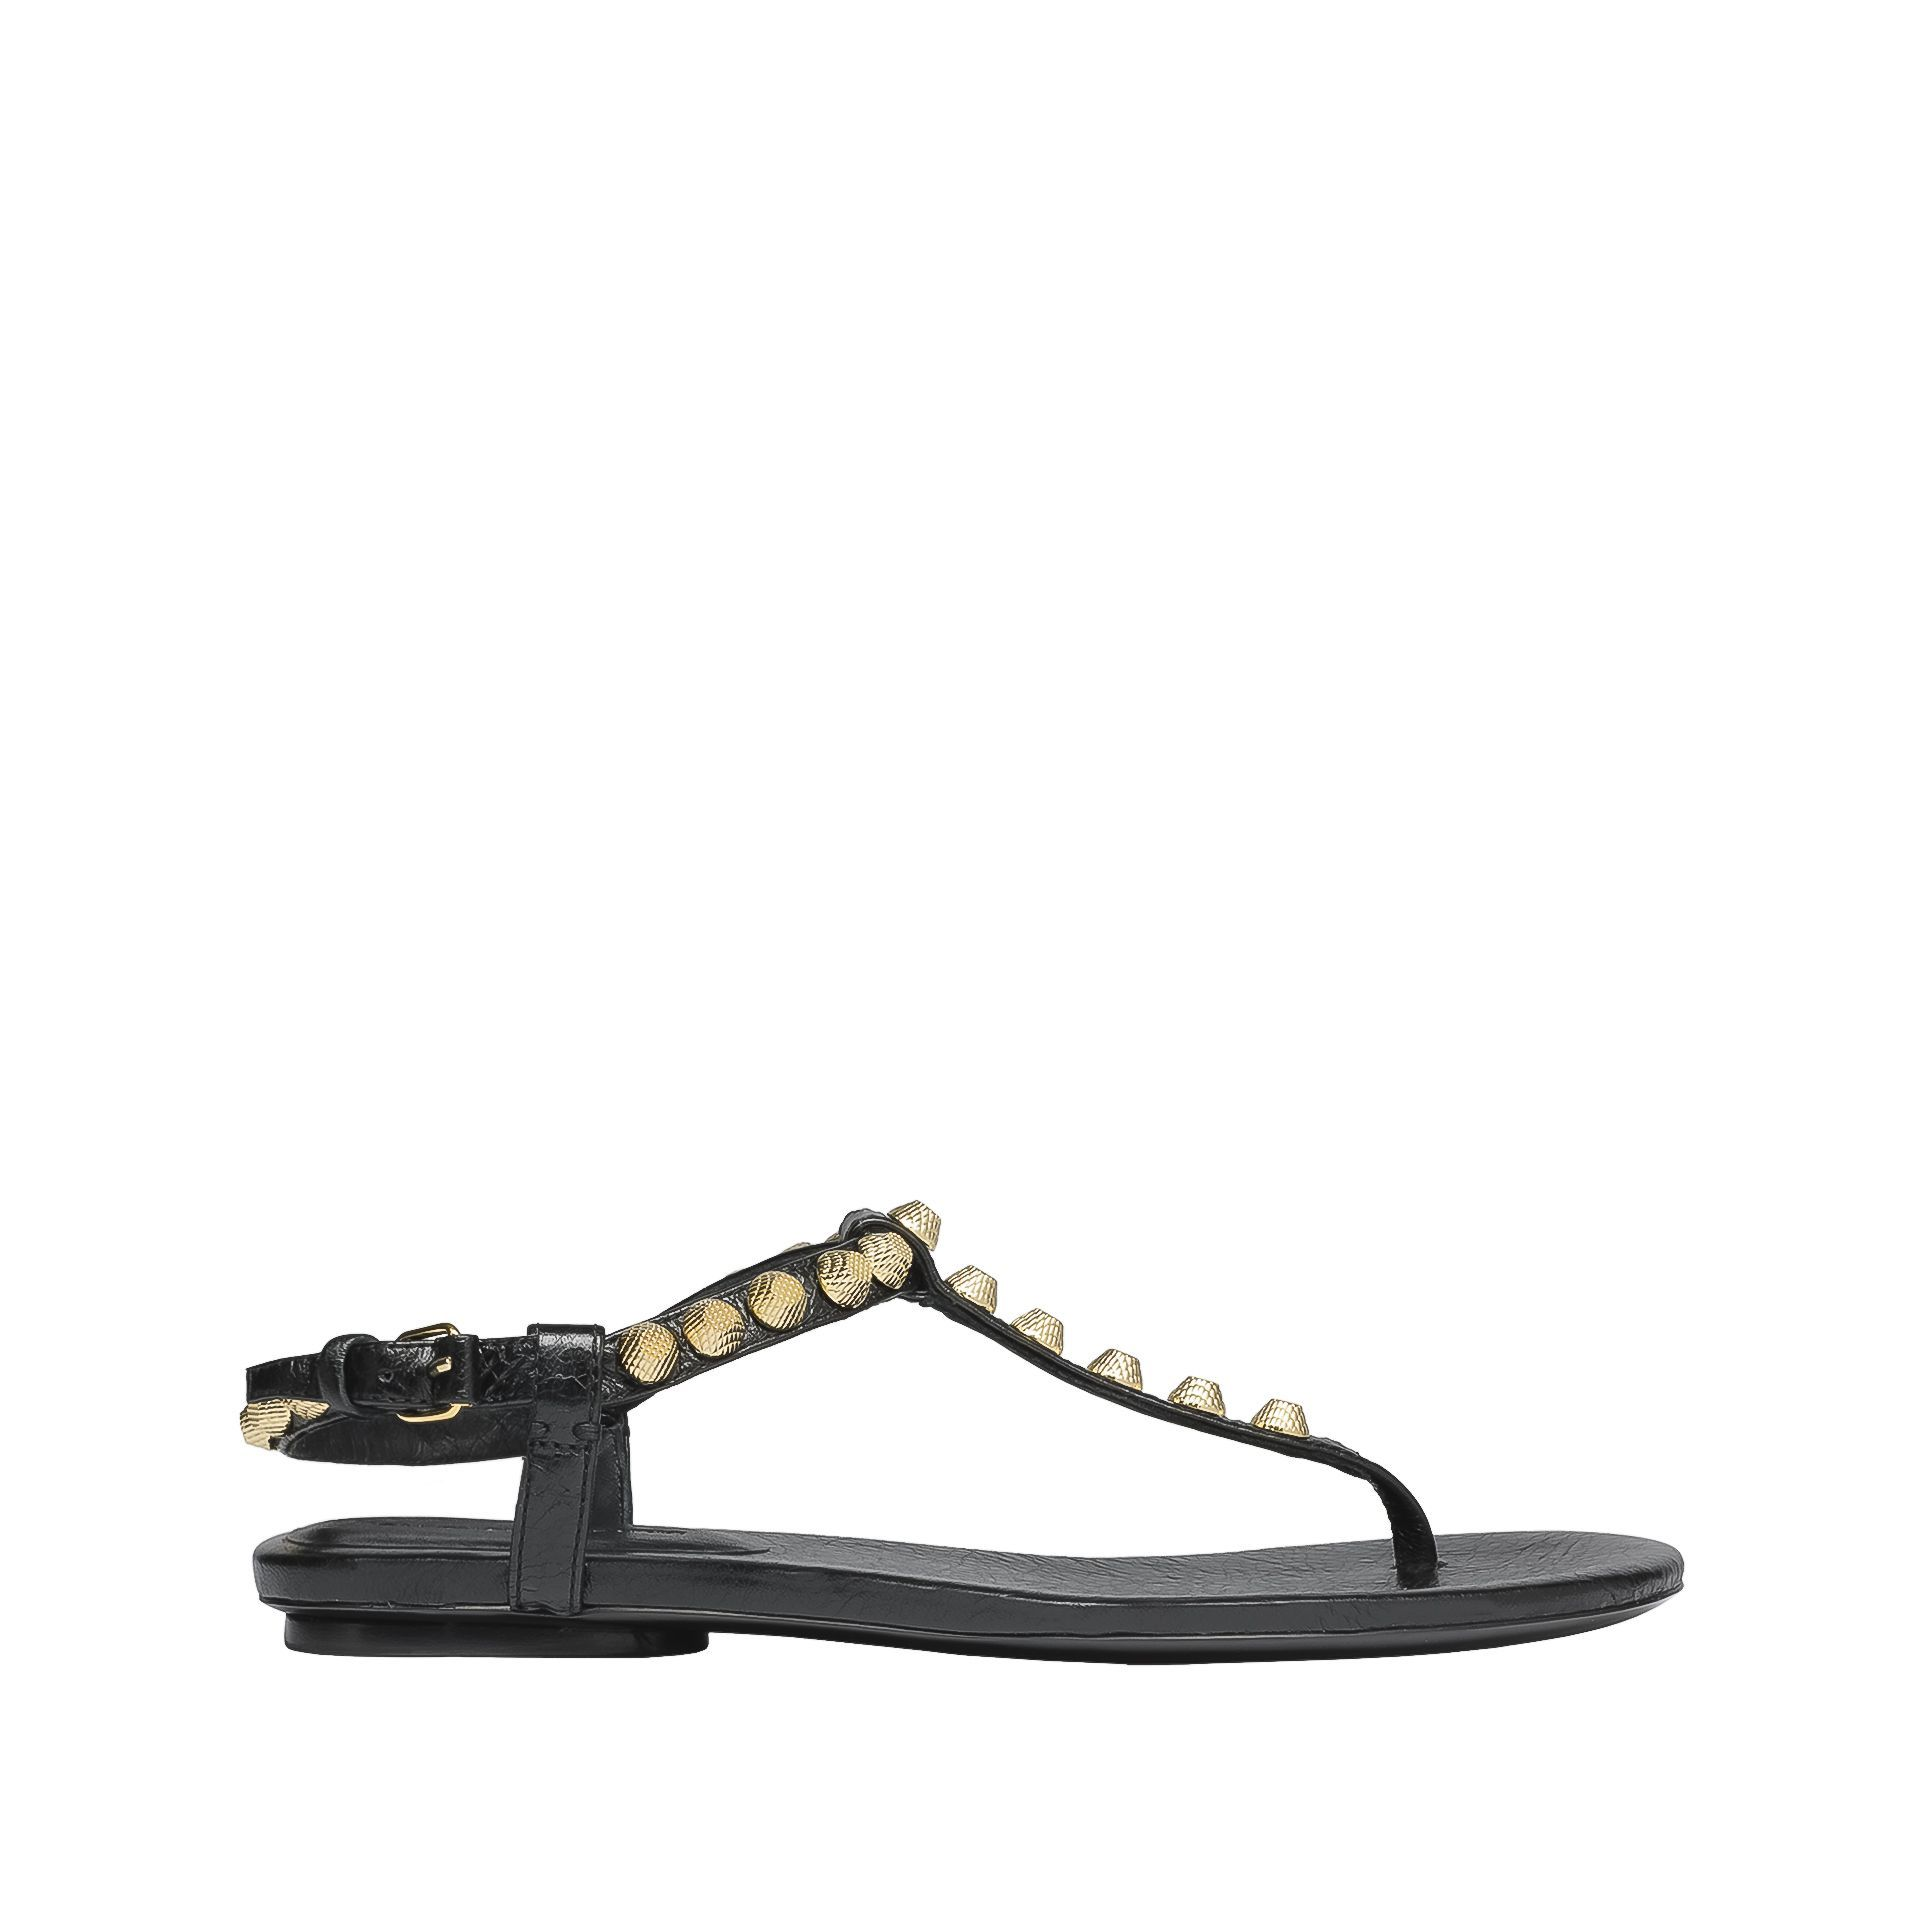 Giant gold sandals - Black Balenciaga